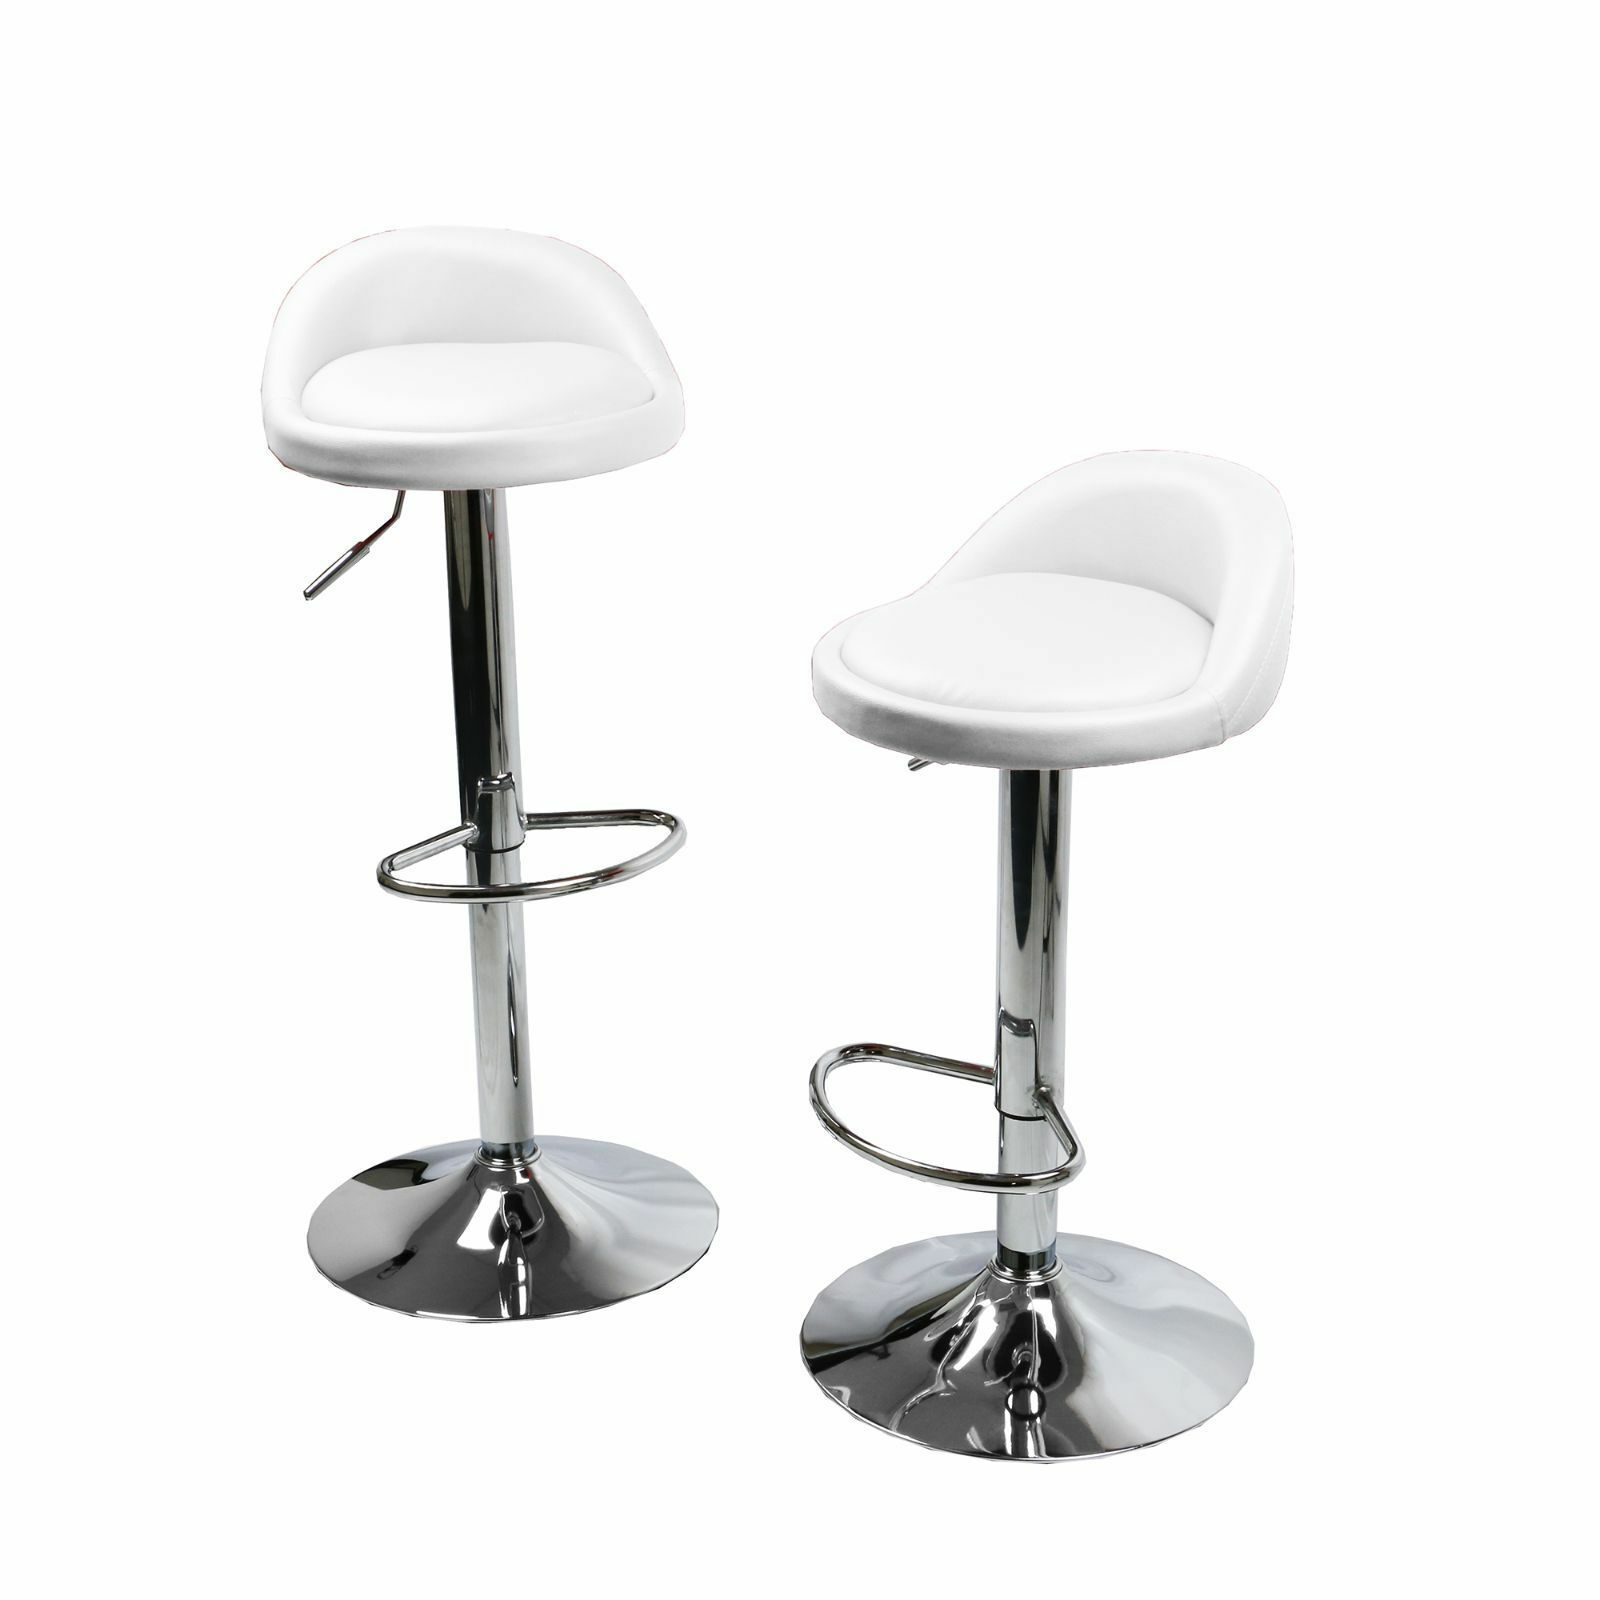 chair and stool heights the best high set of 2 white leather bar stools swivel dinning counter